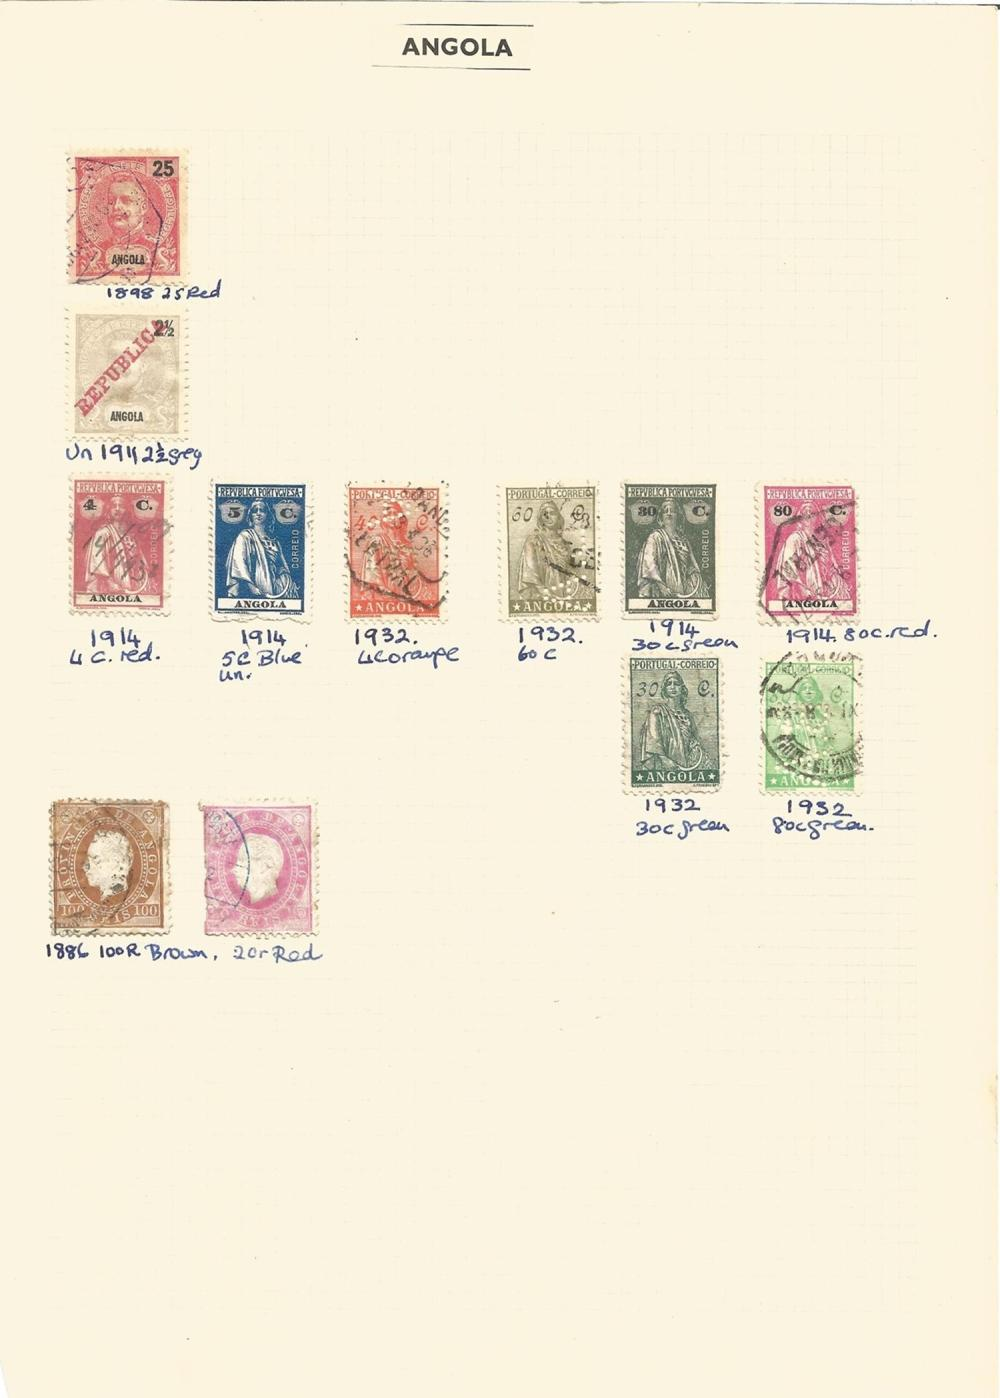 Angola, Cape Verde Islands, Azores, stamps on loose sheets, approx. 15. Good condition. We combine